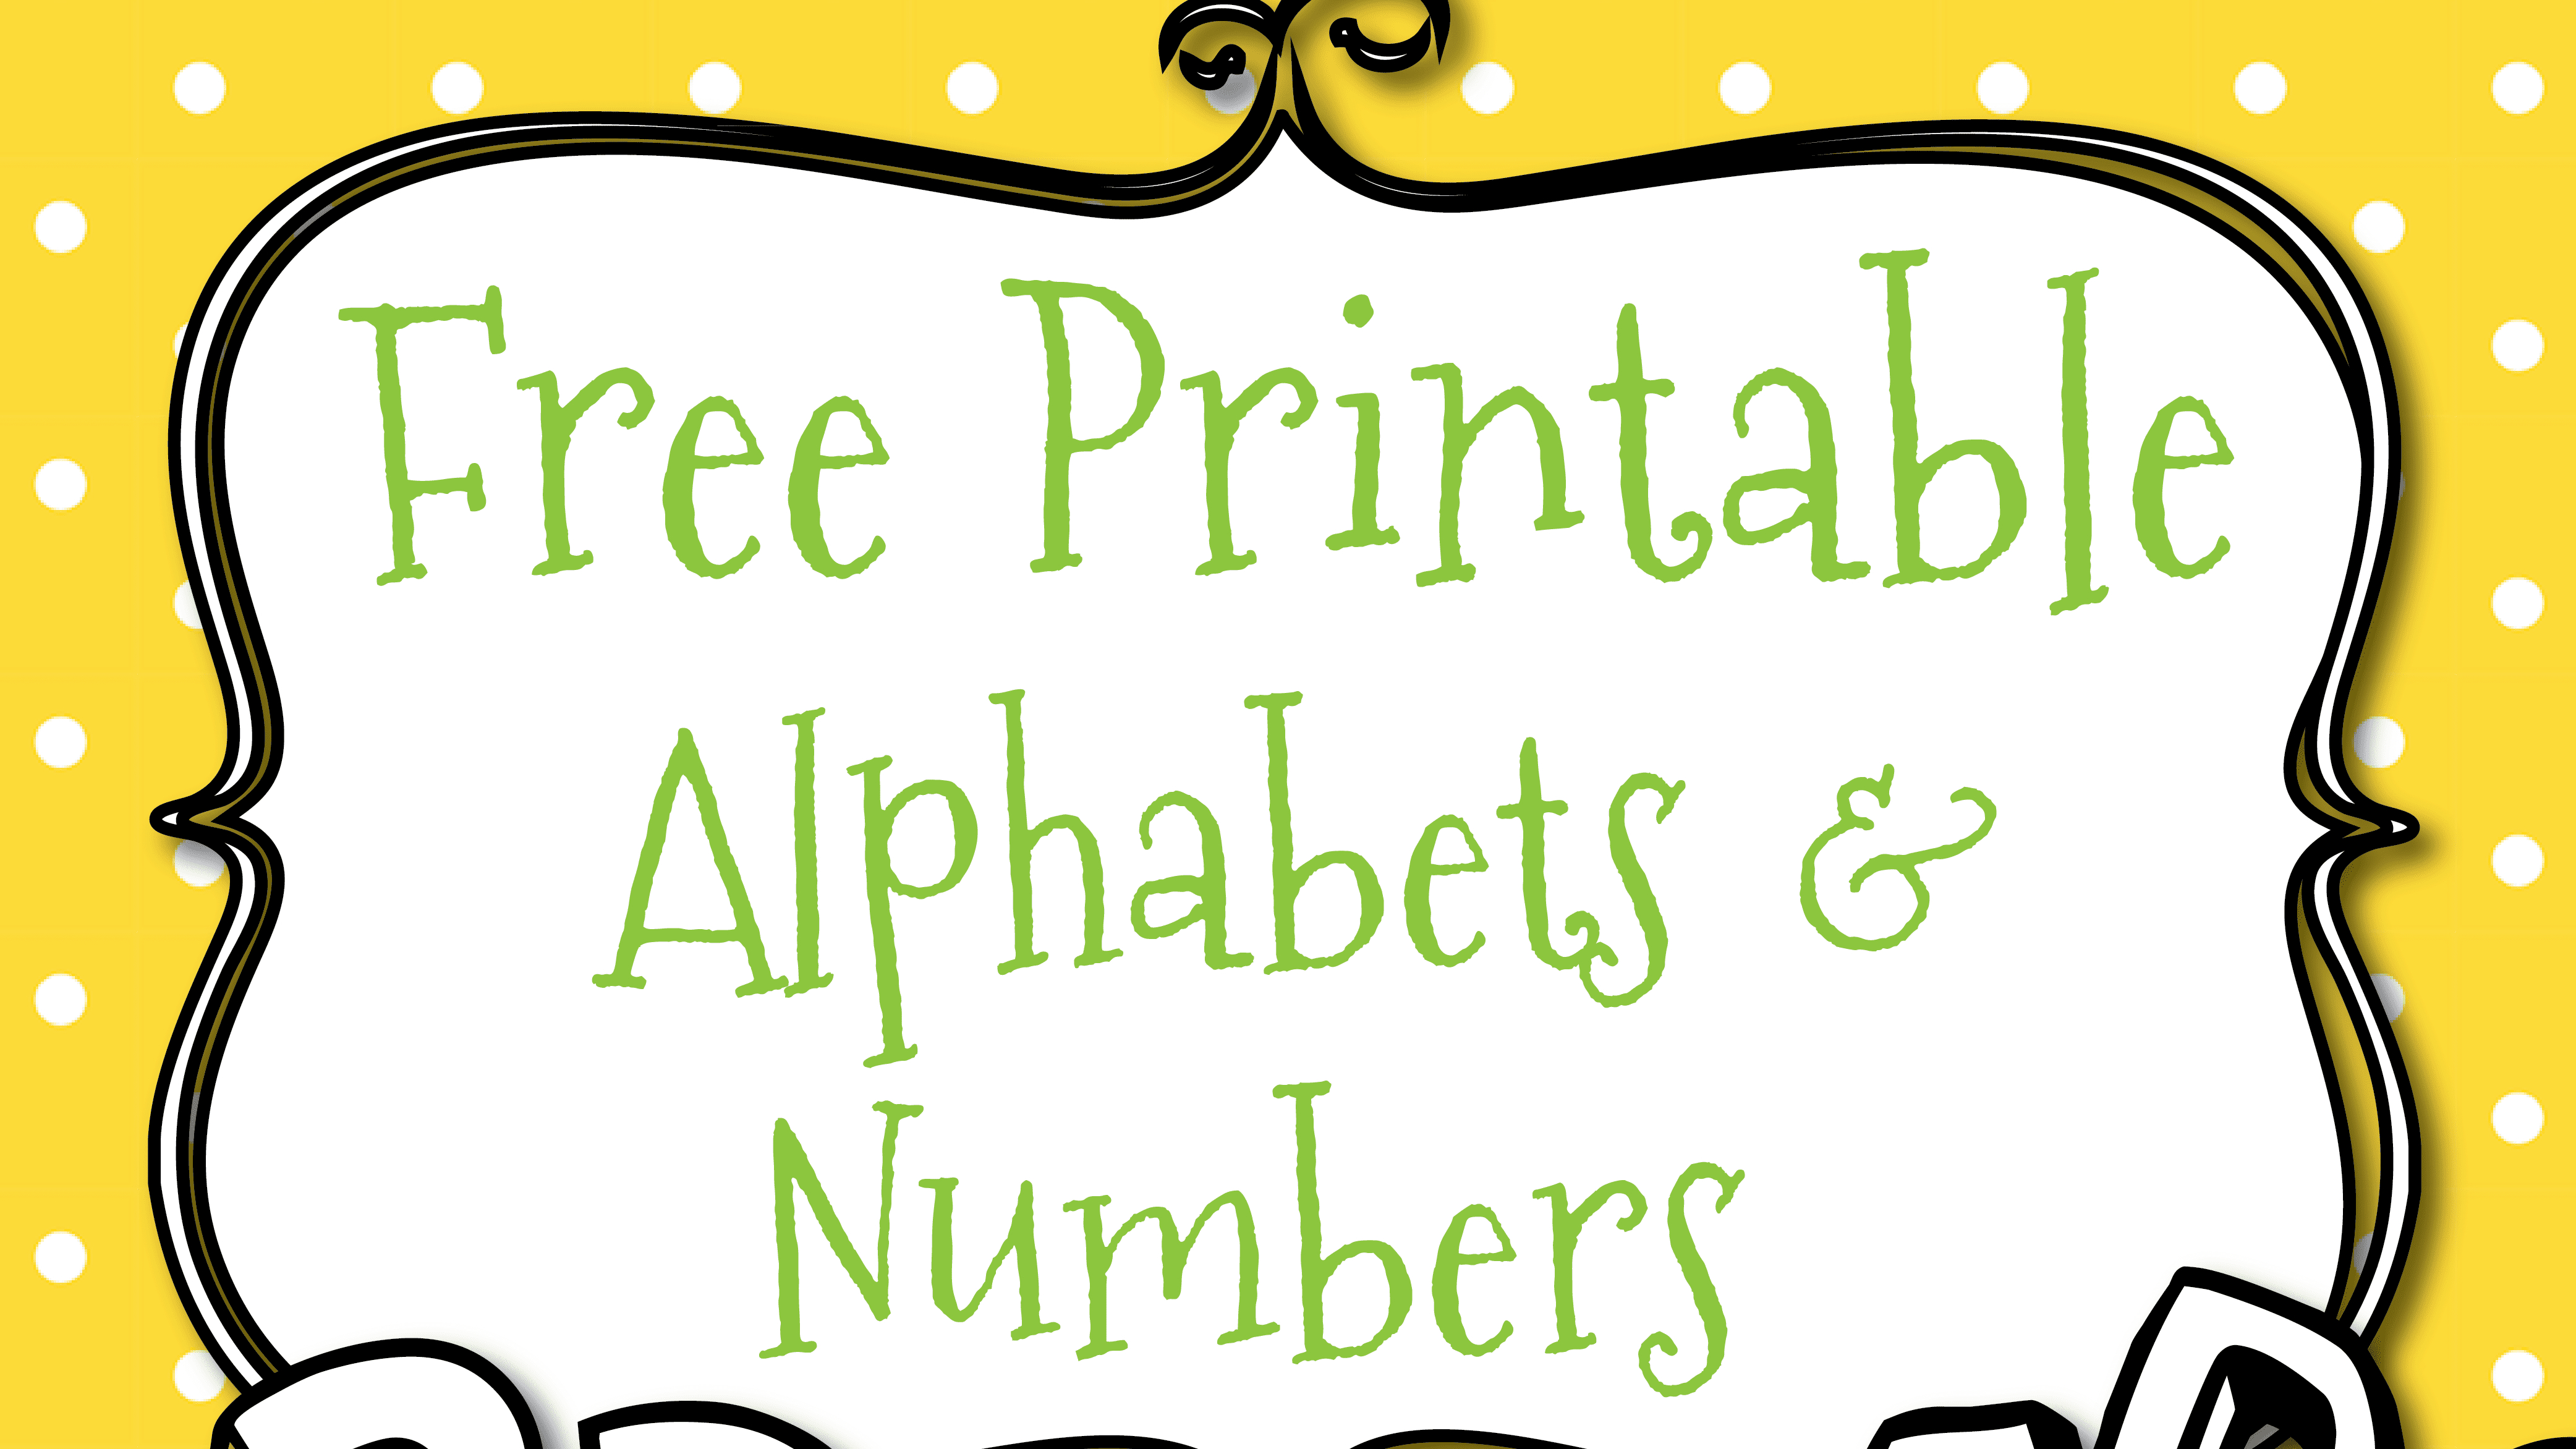 Free Printable Letters And Numbers For Crafts - Free Printable Numbers